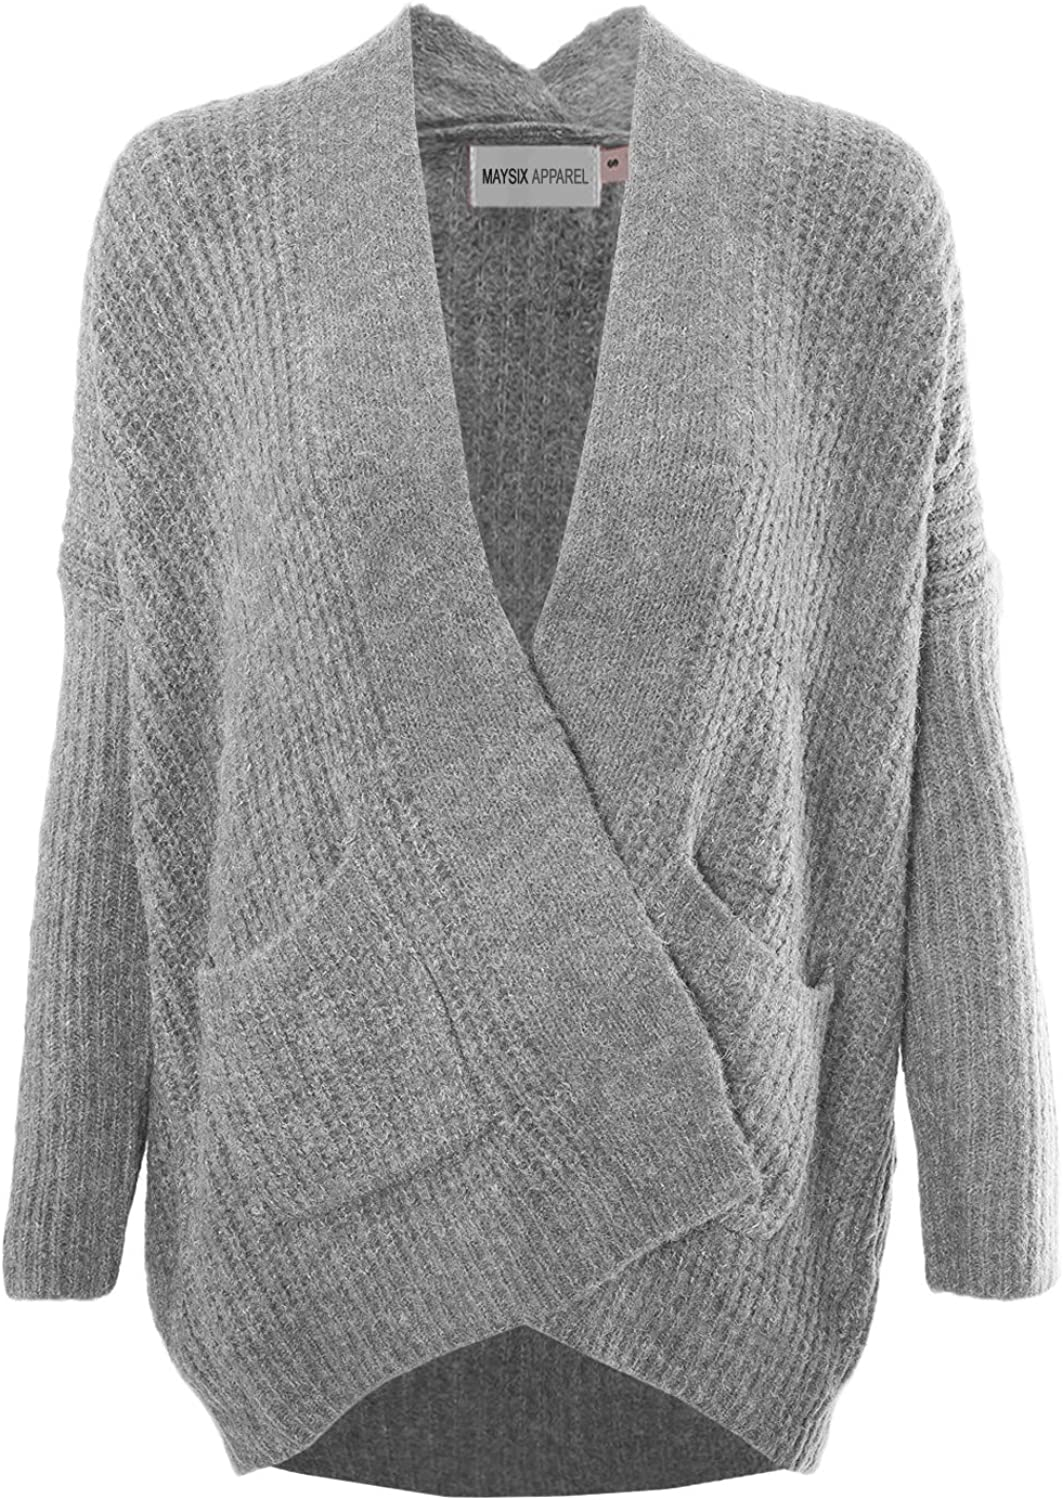 MAYSIX APPAREL Women Casual Cotton Cable Knit Open Sweater Long Sleeve Chunky Cardigan W Pocket Beige